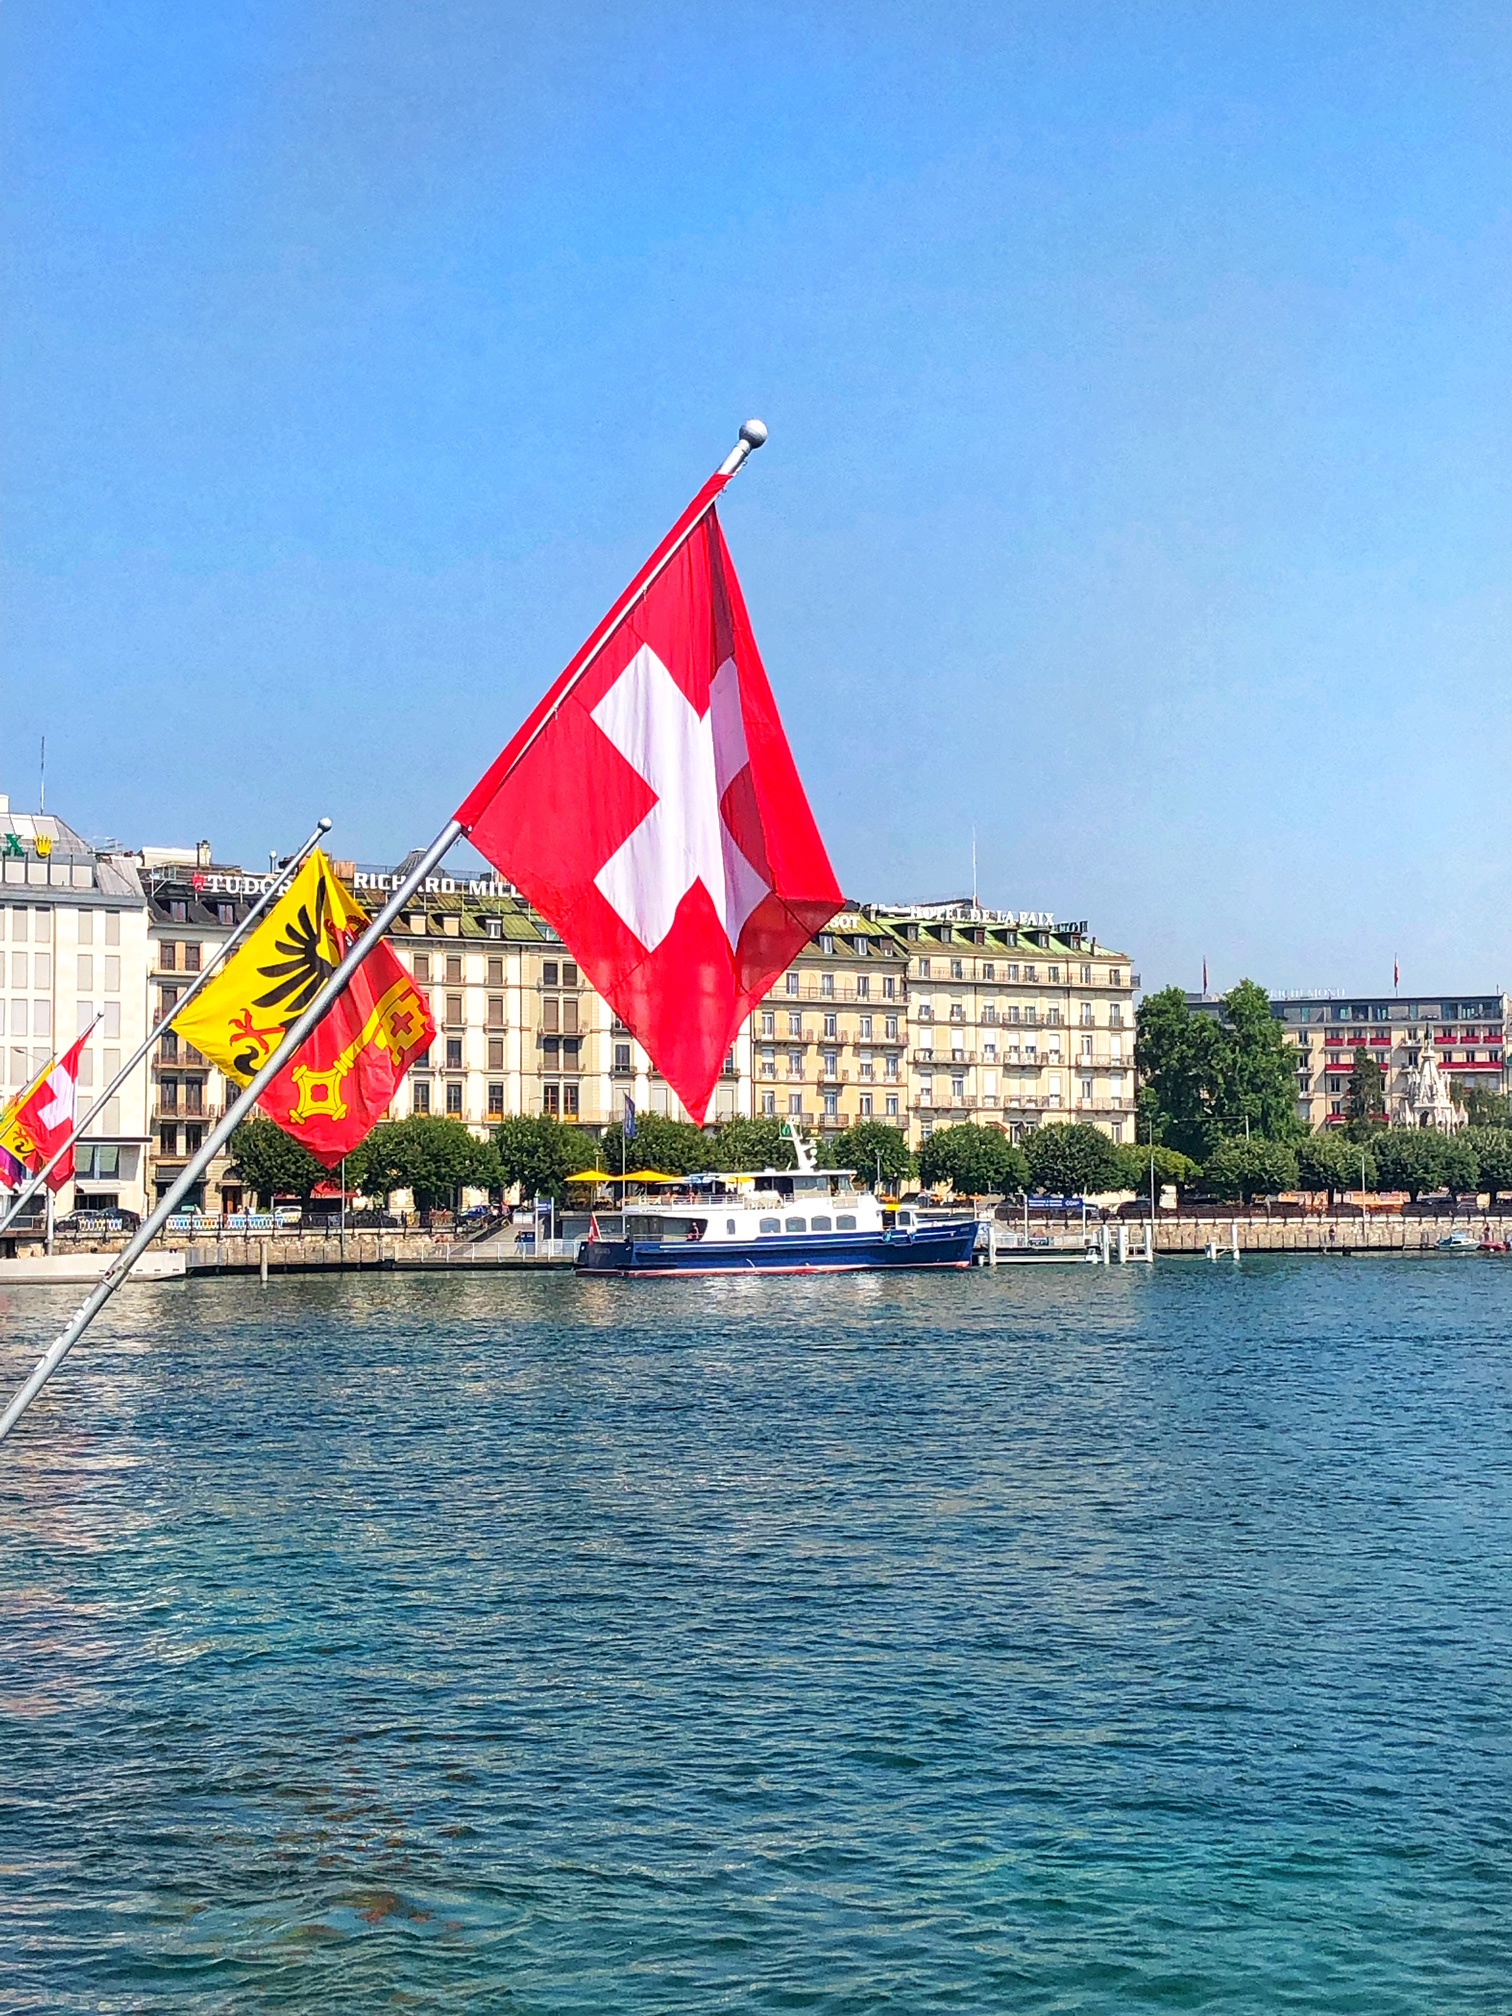 geneva switzerland, the-alyst.com